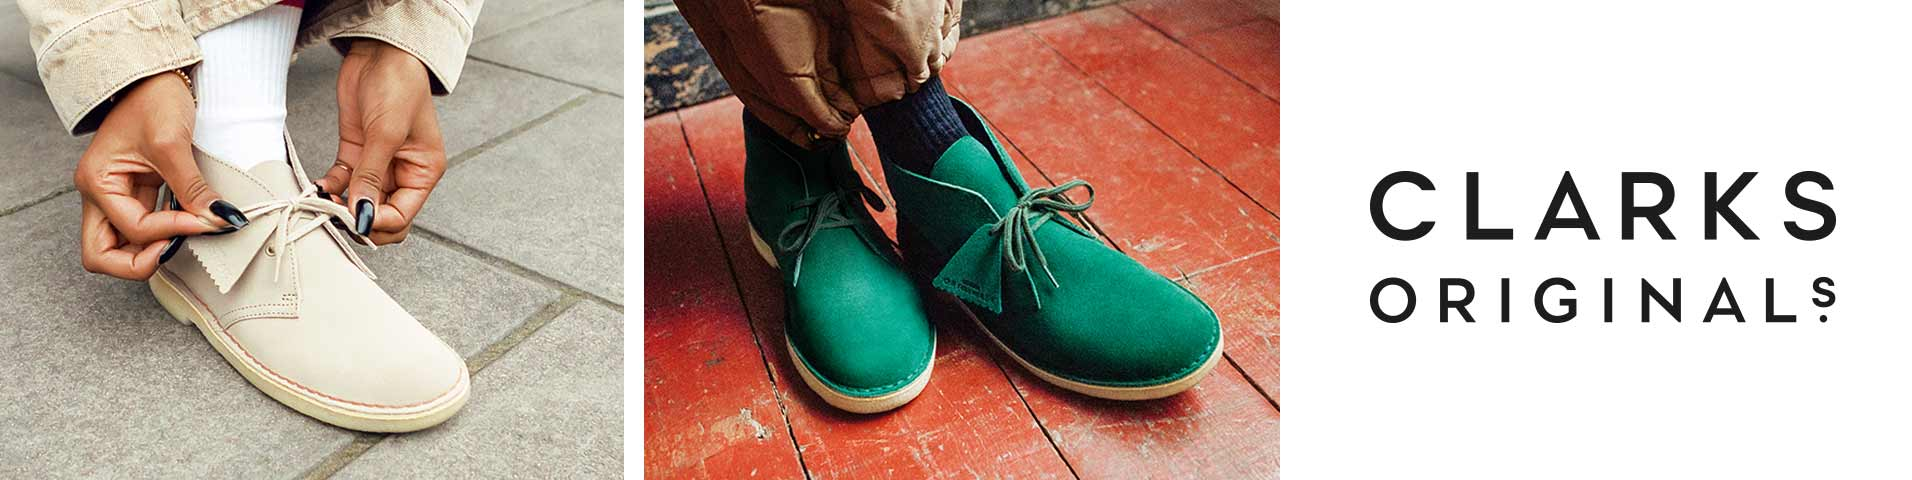 Clarks Originals Online Shop | Clarks Originals